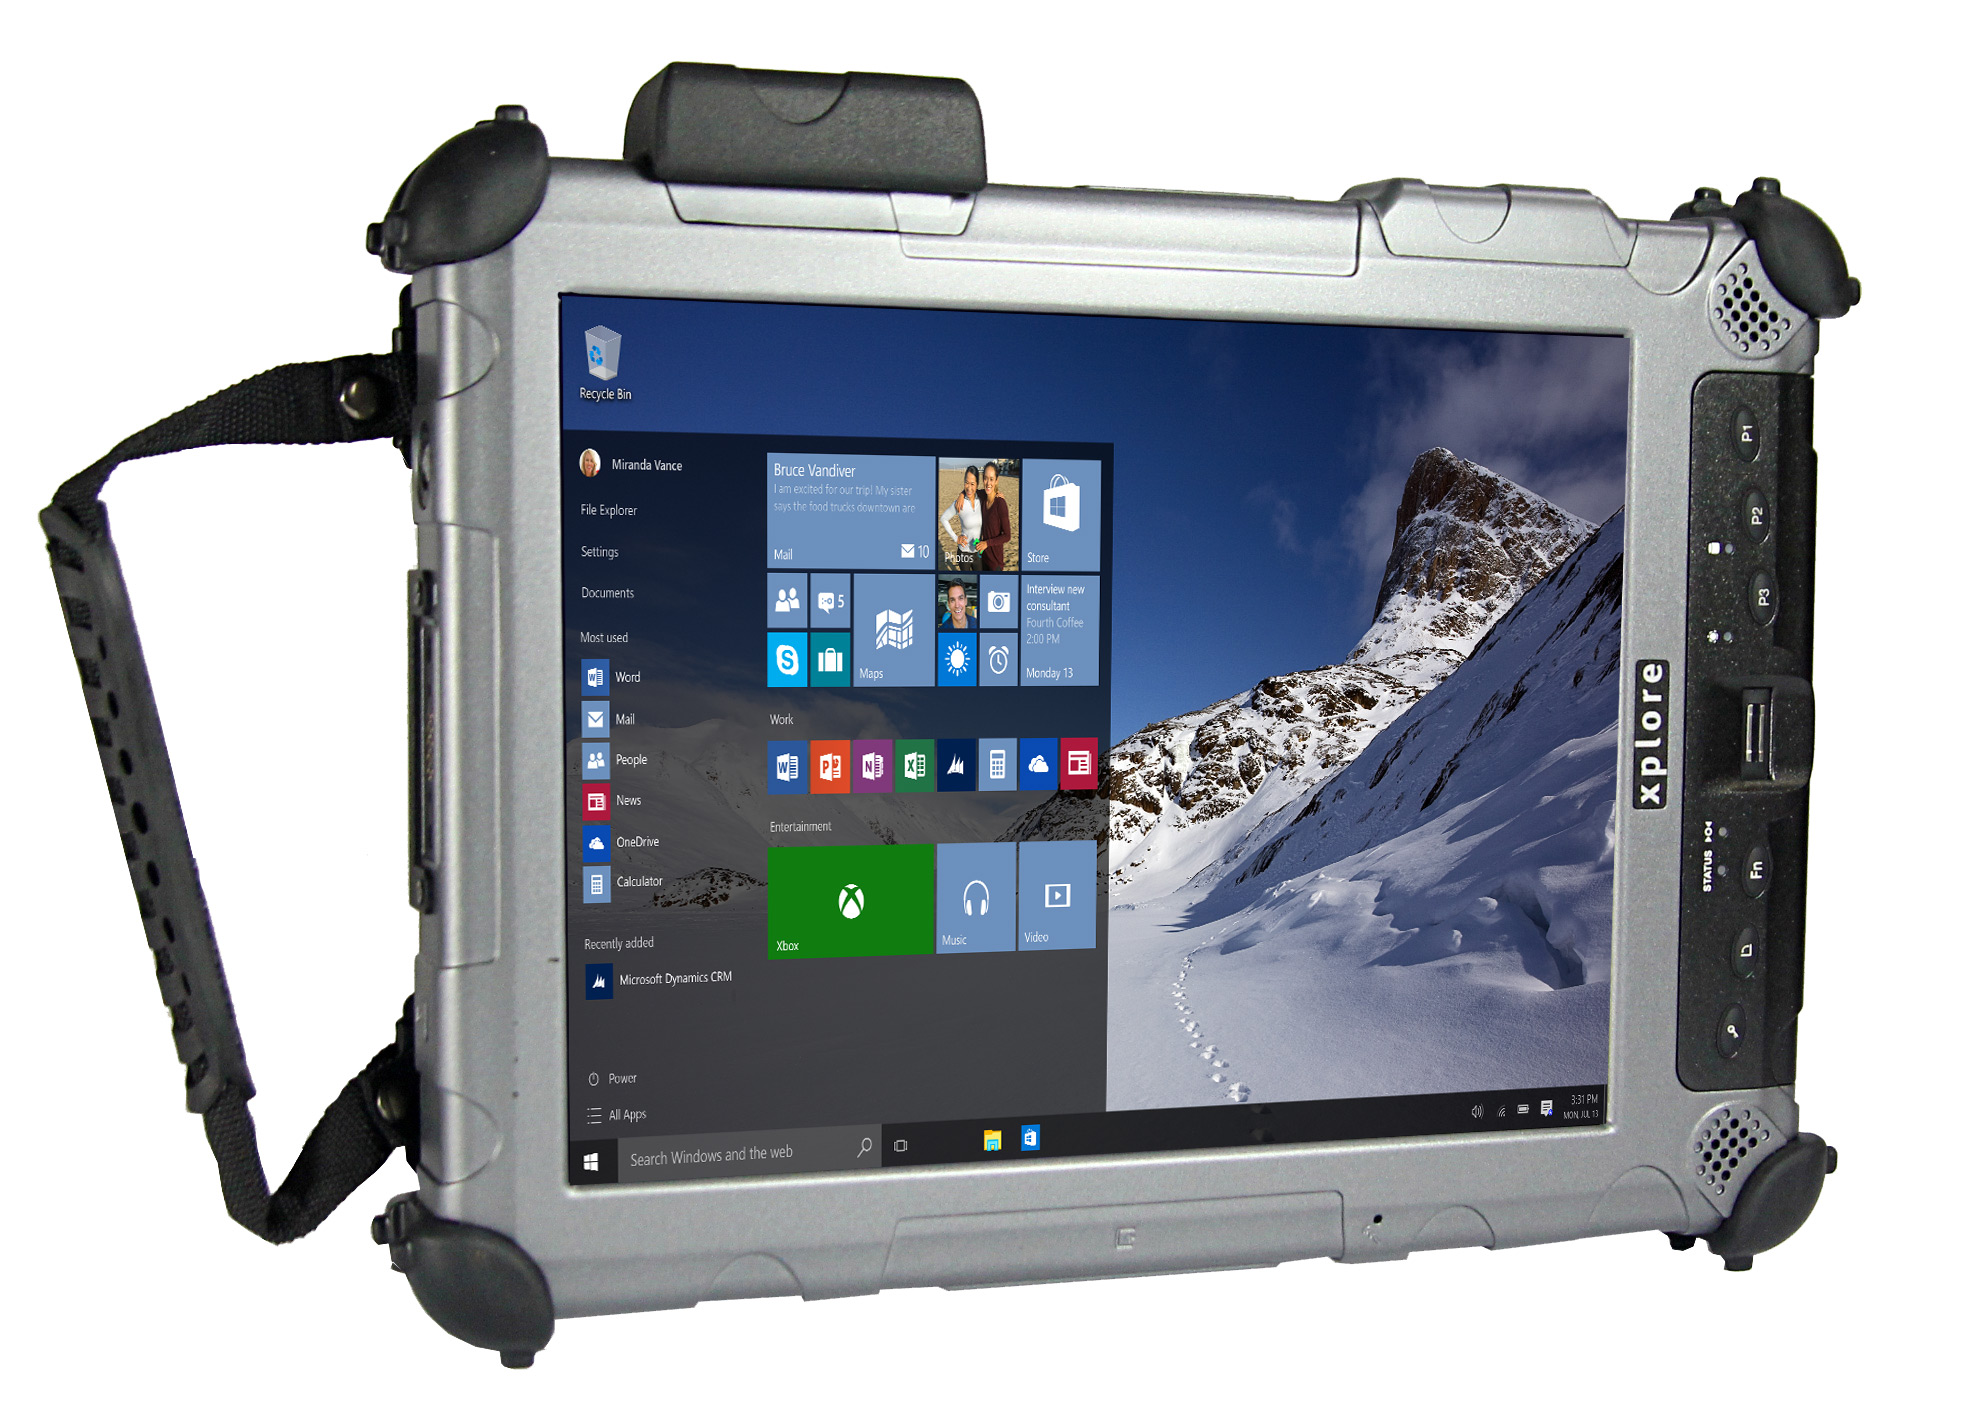 Charming XC6 DMSR Ultra Rugged Tablet PC